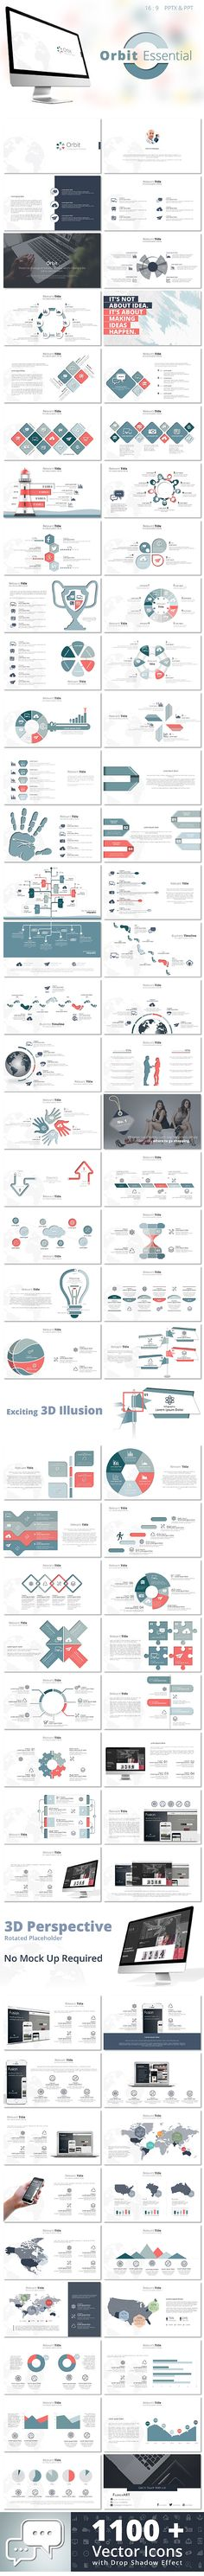 Orbit Essential PowerPoint Presentation Tempalte #design Download: http://graphicriver.net/item/orbit-essential-powerpoint-presentation/11767528?ref=ksioks